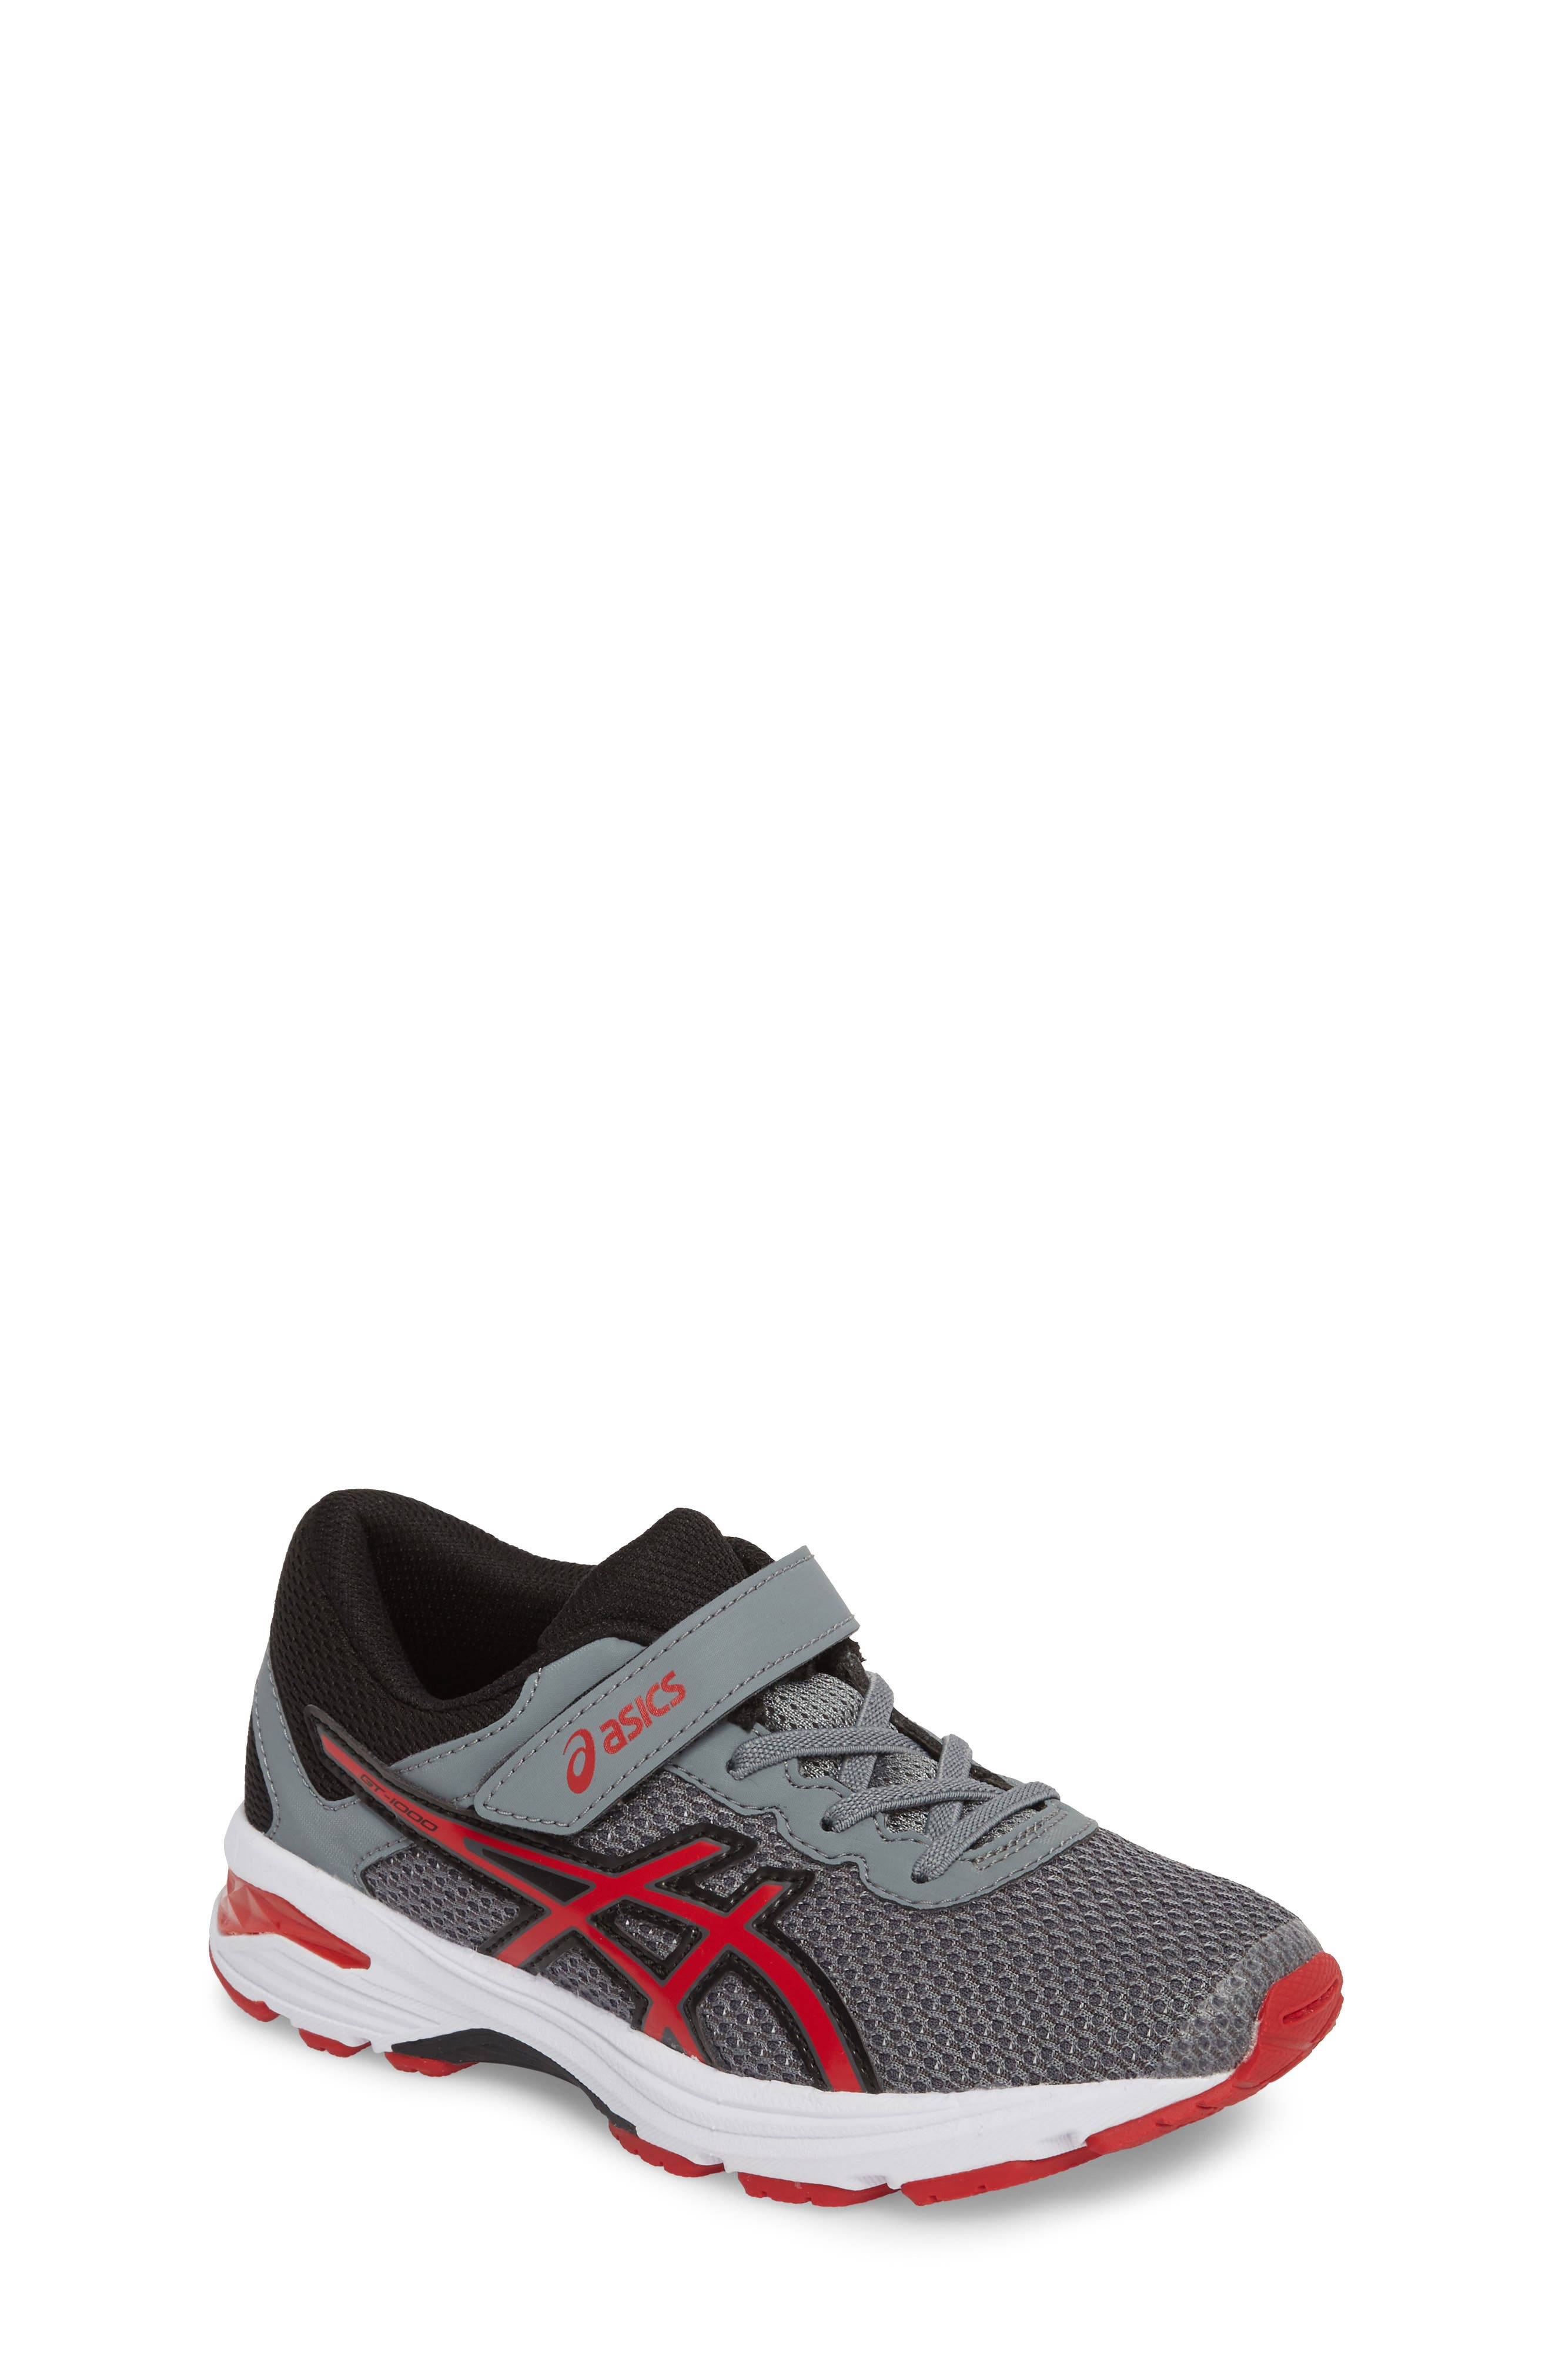 Asics GT-1000<sup>™</sup> 6 PS Sneaker,                             Main thumbnail 1, color,                             Stone Grey/ Classic Red/ Black